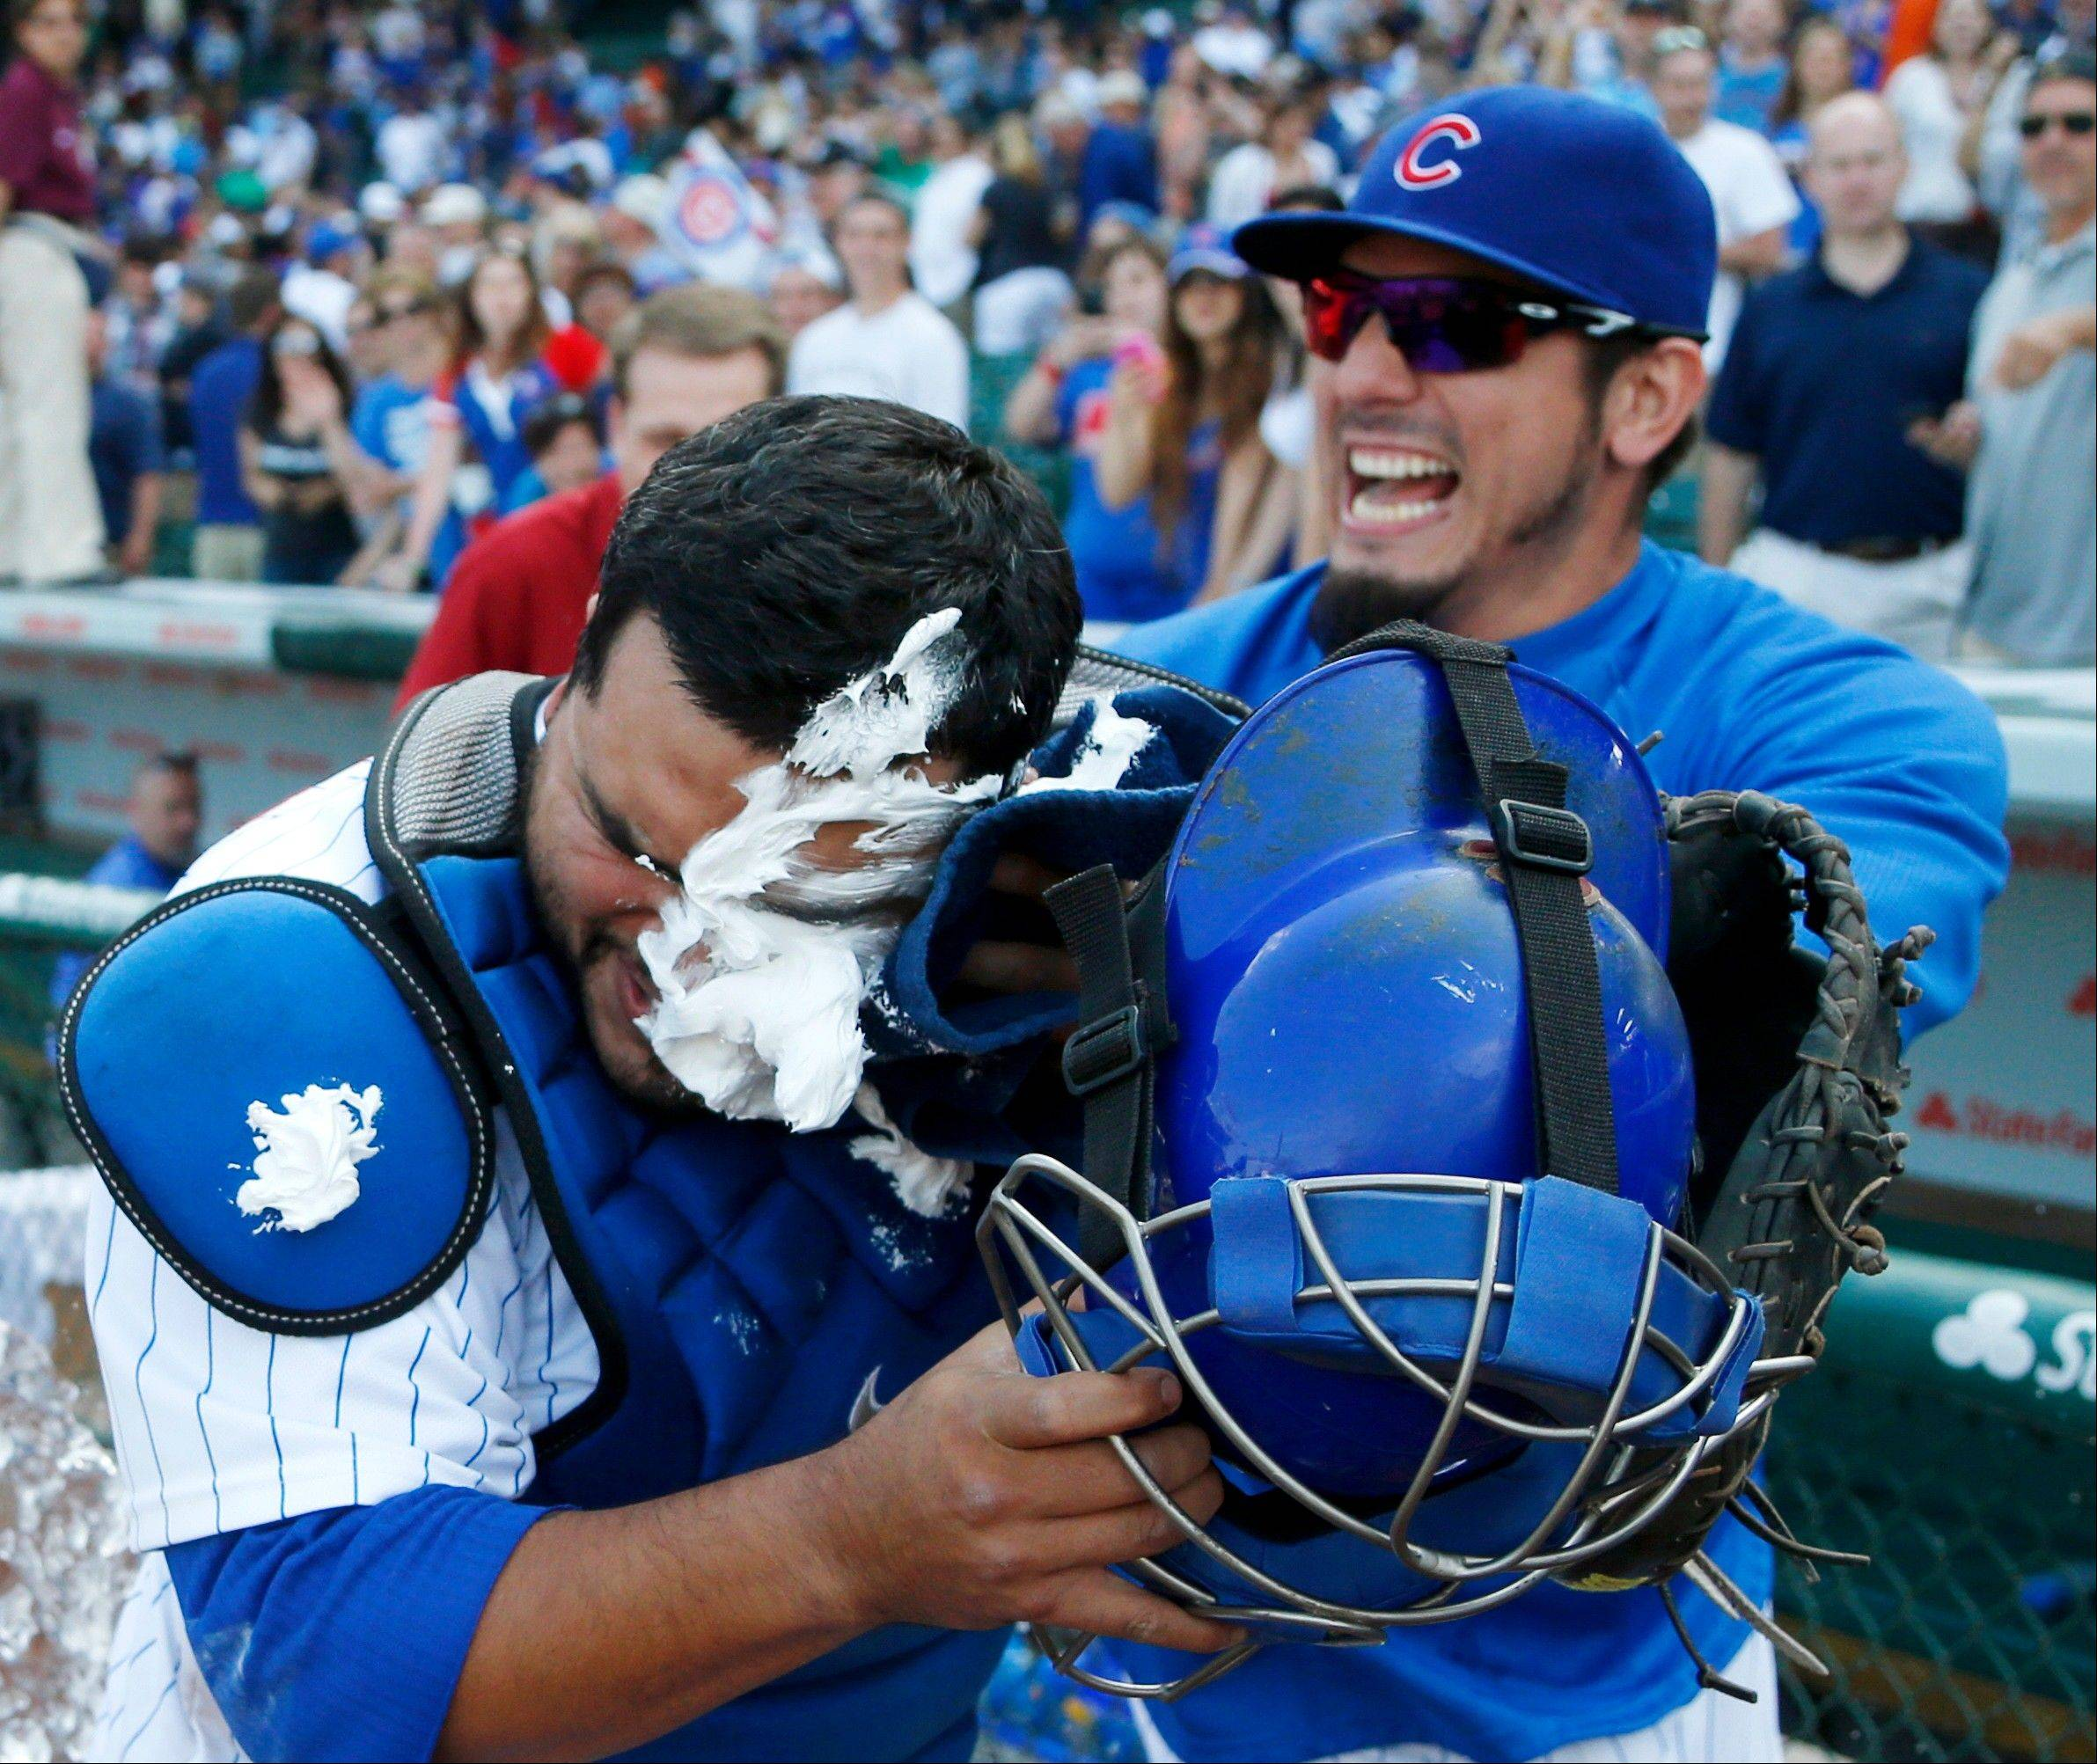 Matt Garza delivers a shaving cream pie to the face of catcher Dioner Navarro, who hit 3 home runs in the Cubs' 9-3 win over the White Sox at Wrigley Field on Wednesday.